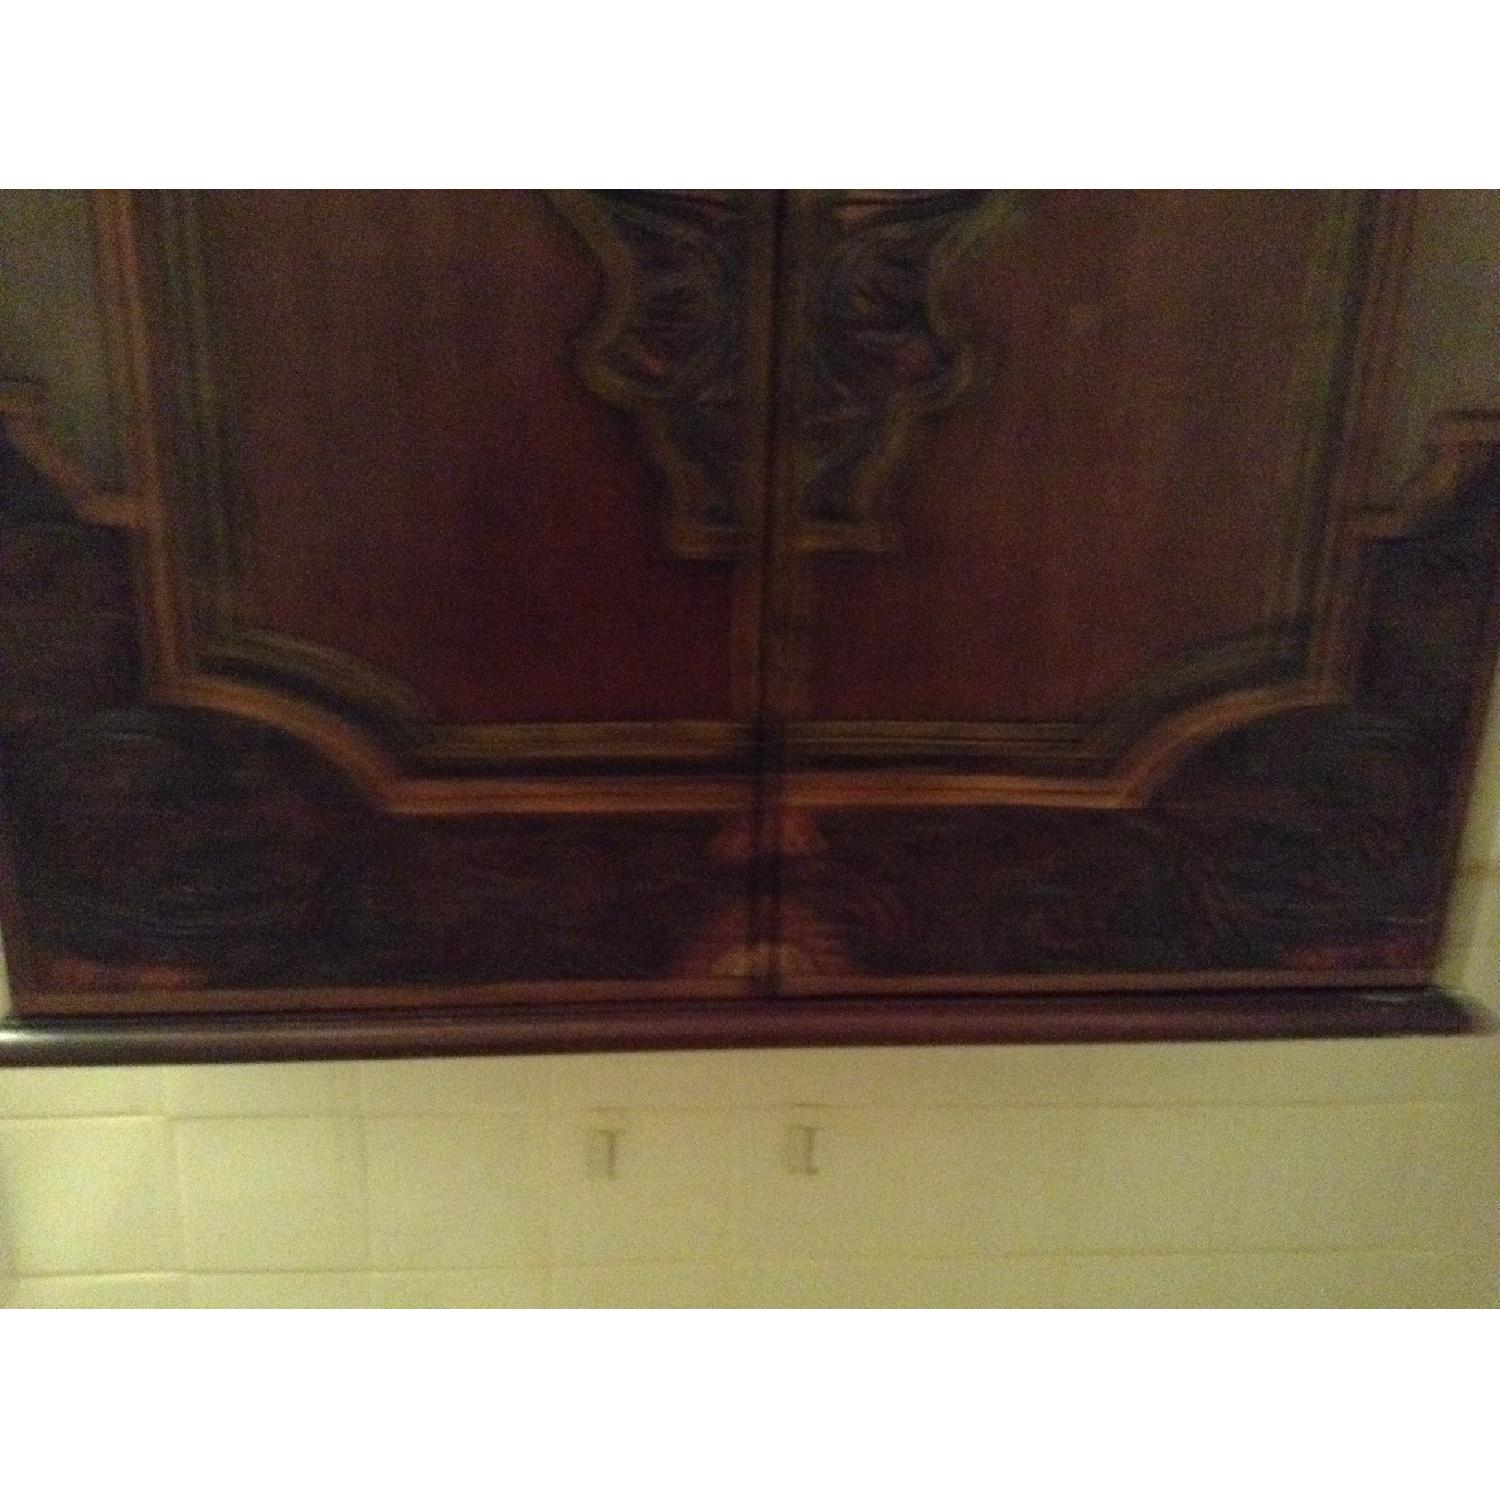 South East Asian Wall Mounted Cabinet - image-22